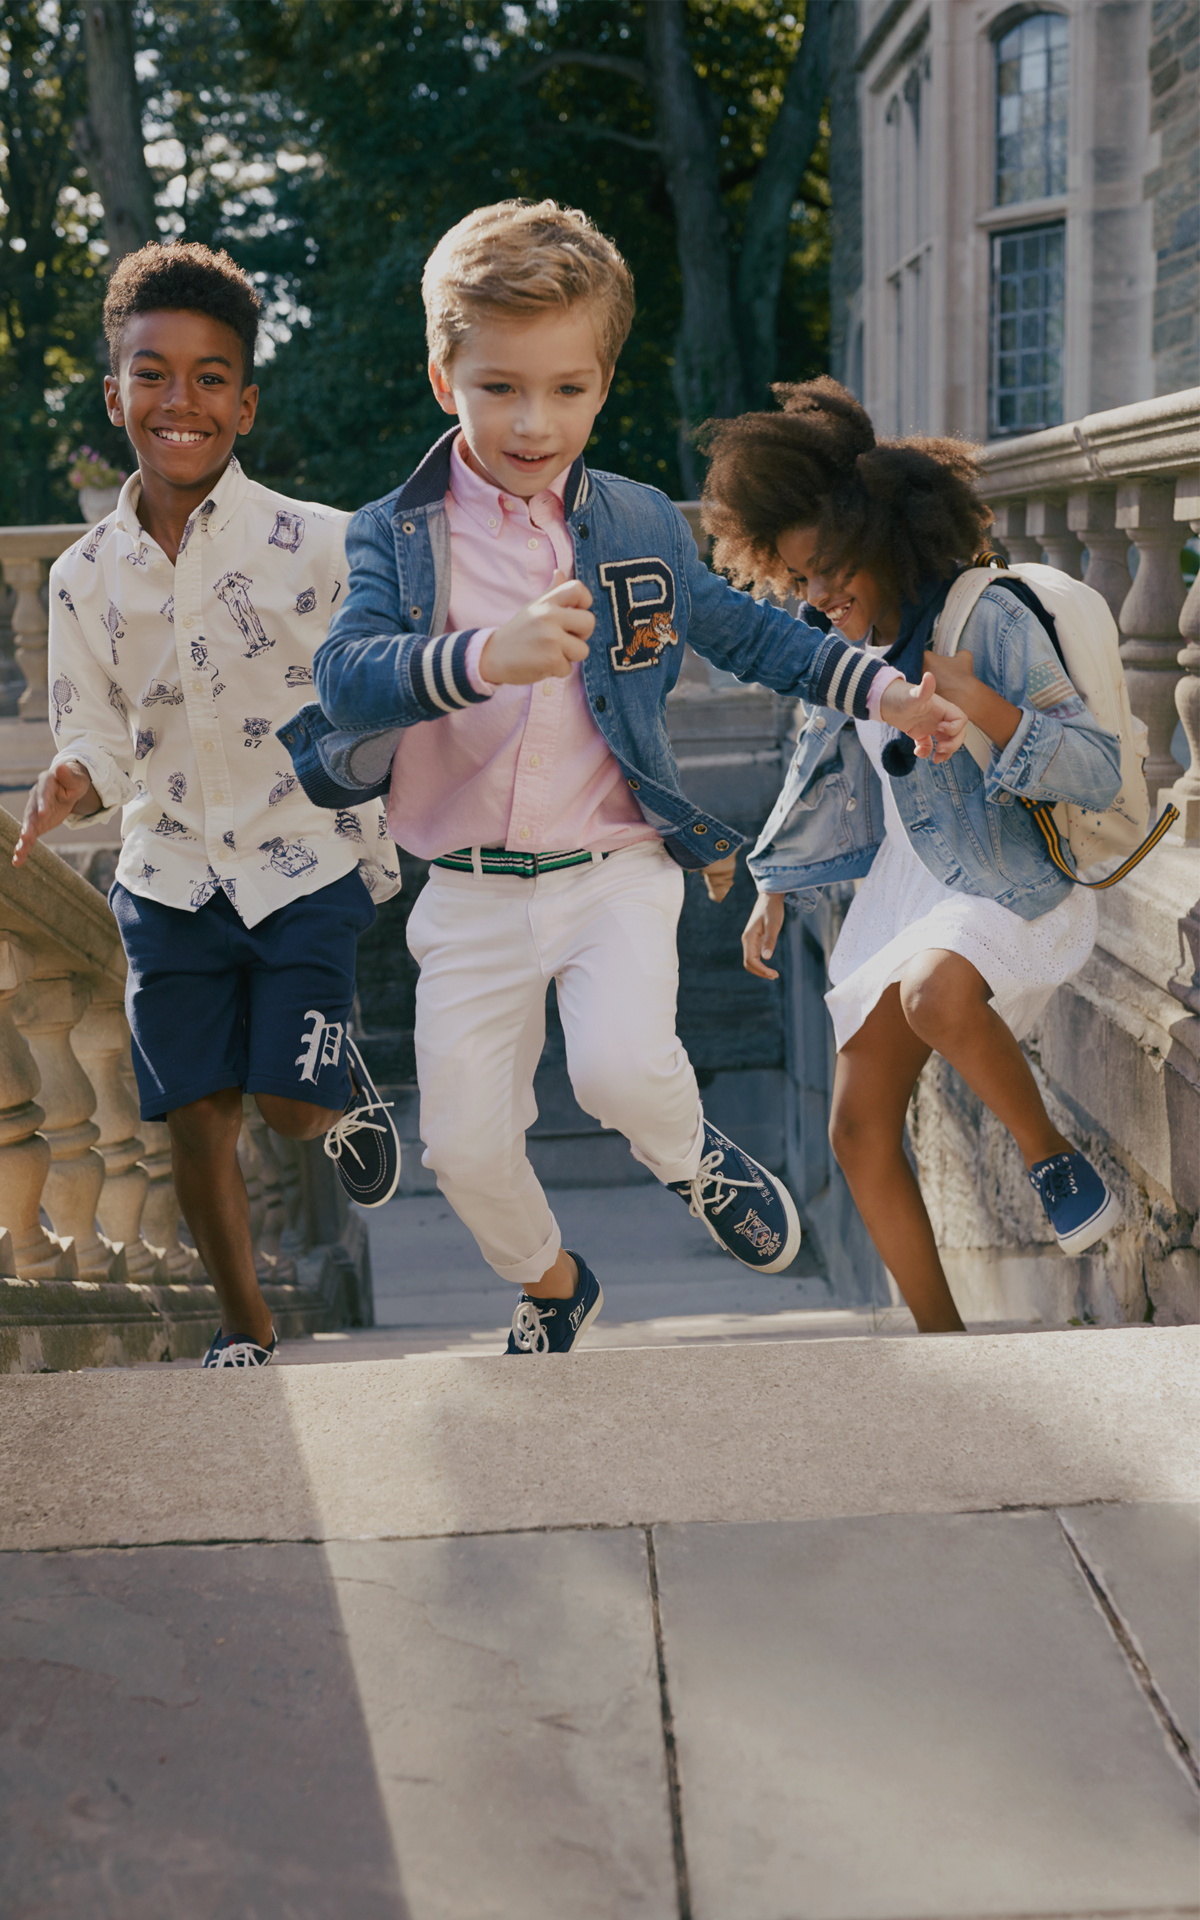 Children running in Polo Ralph Lauren shirts